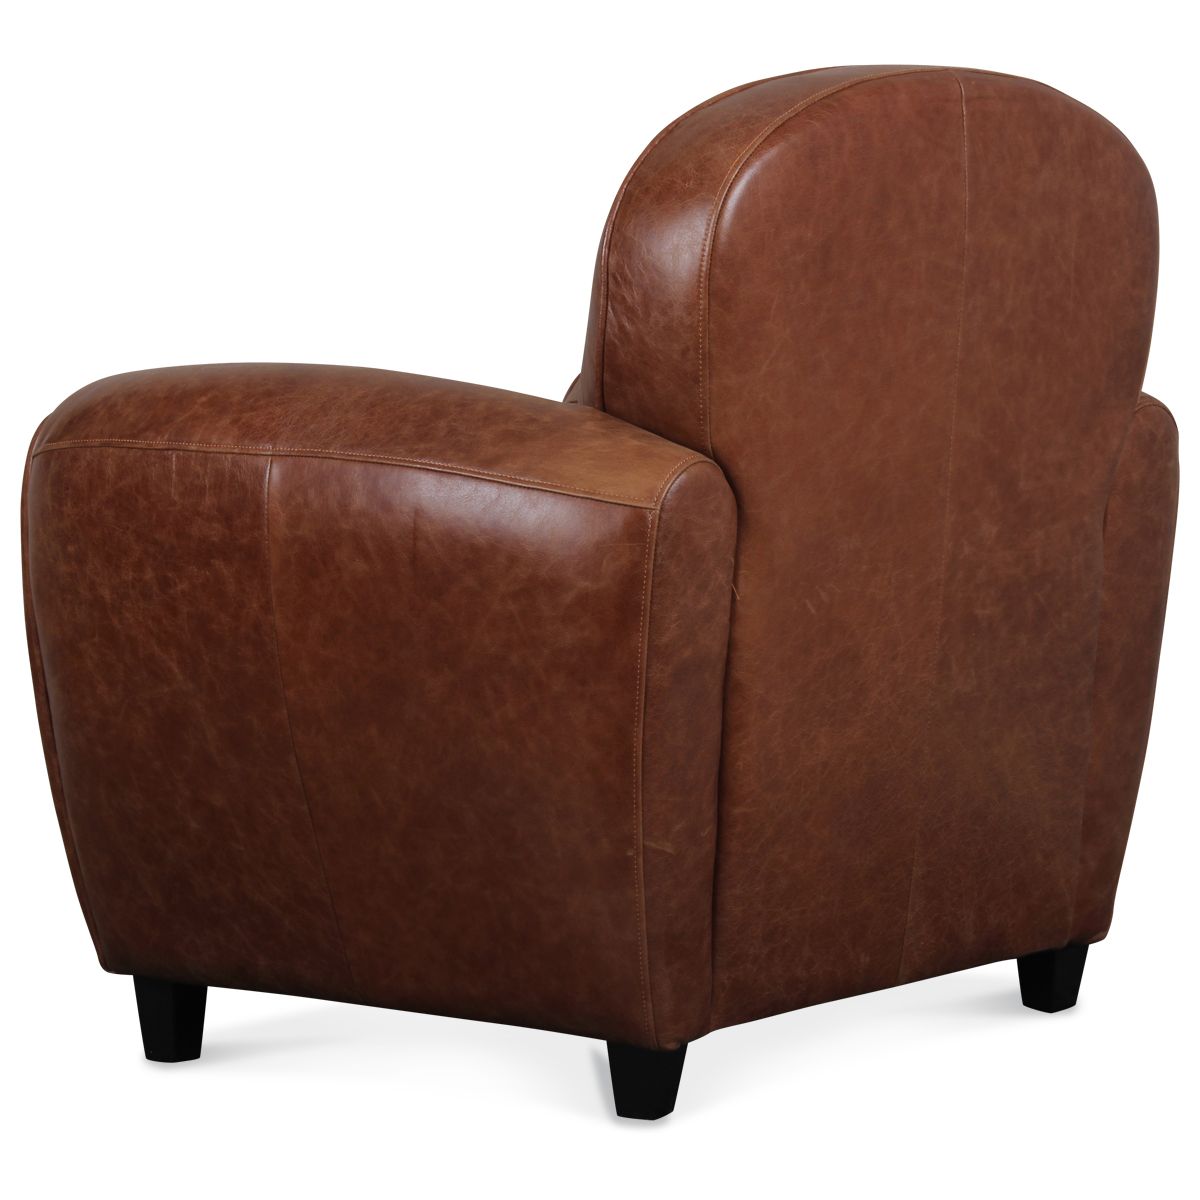 fauteuil club en cuir marron vintage industriel demeure. Black Bedroom Furniture Sets. Home Design Ideas